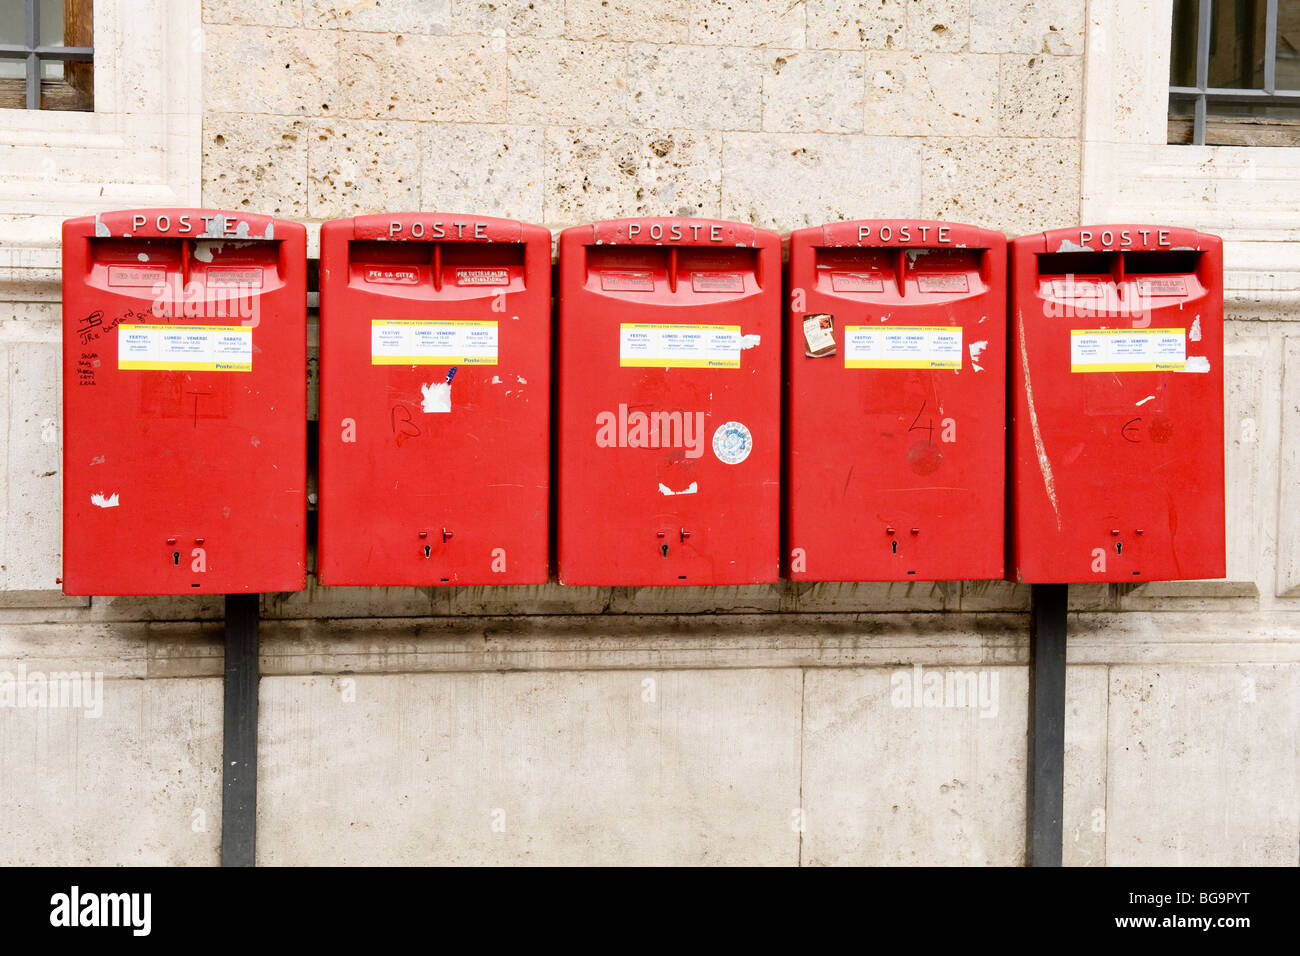 Siena, the red letter boxes in the square - Stock Image